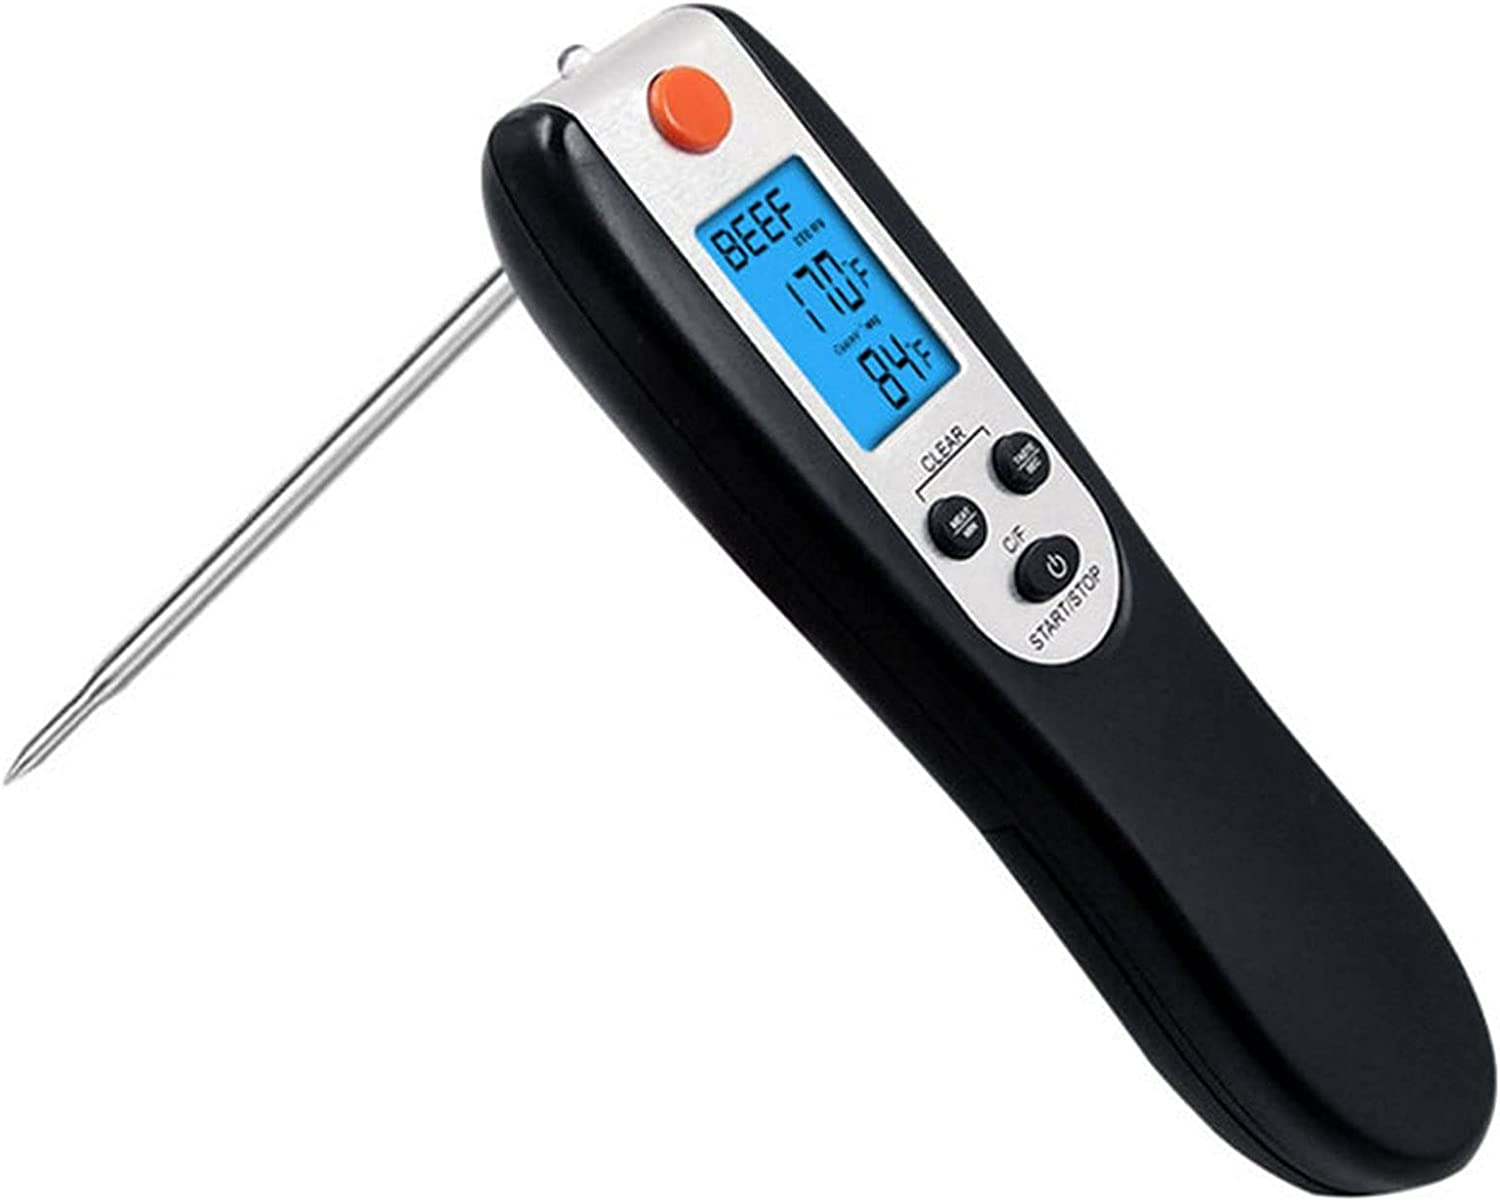 Odekai Instant Read Meat Thermometer specialty shop New Shipping Free Ultra Ther Fast Waterproof